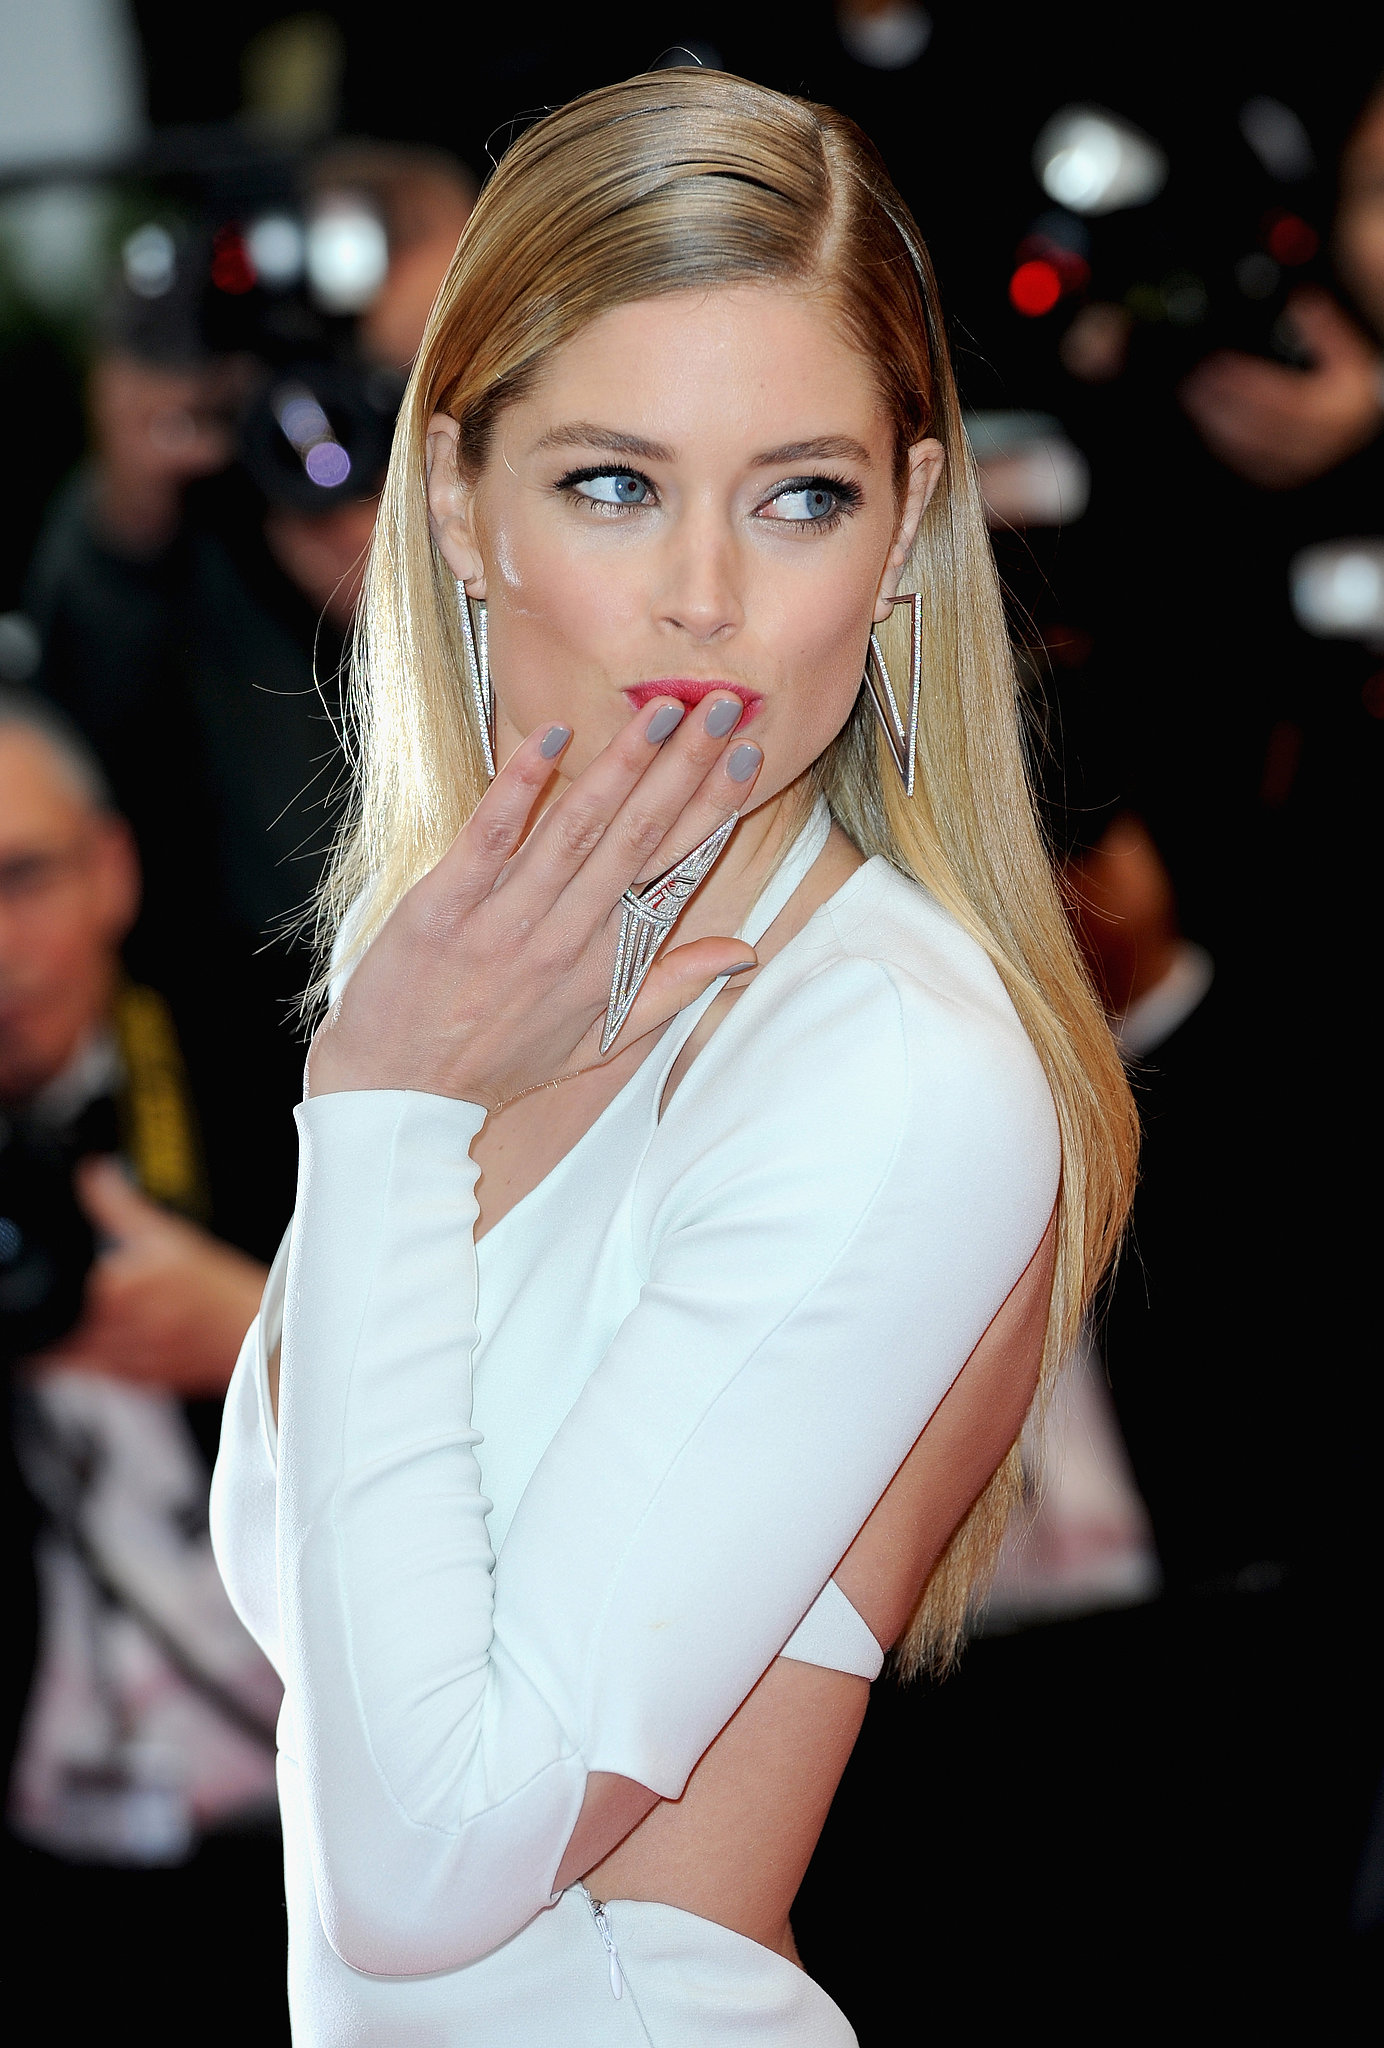 Doutzen Kroes was also at the Jimmy P. (Psychotherapy of a Plains Indian) premiere in a sleek white gown, which she accented with creamy gray nails and a statement ring.